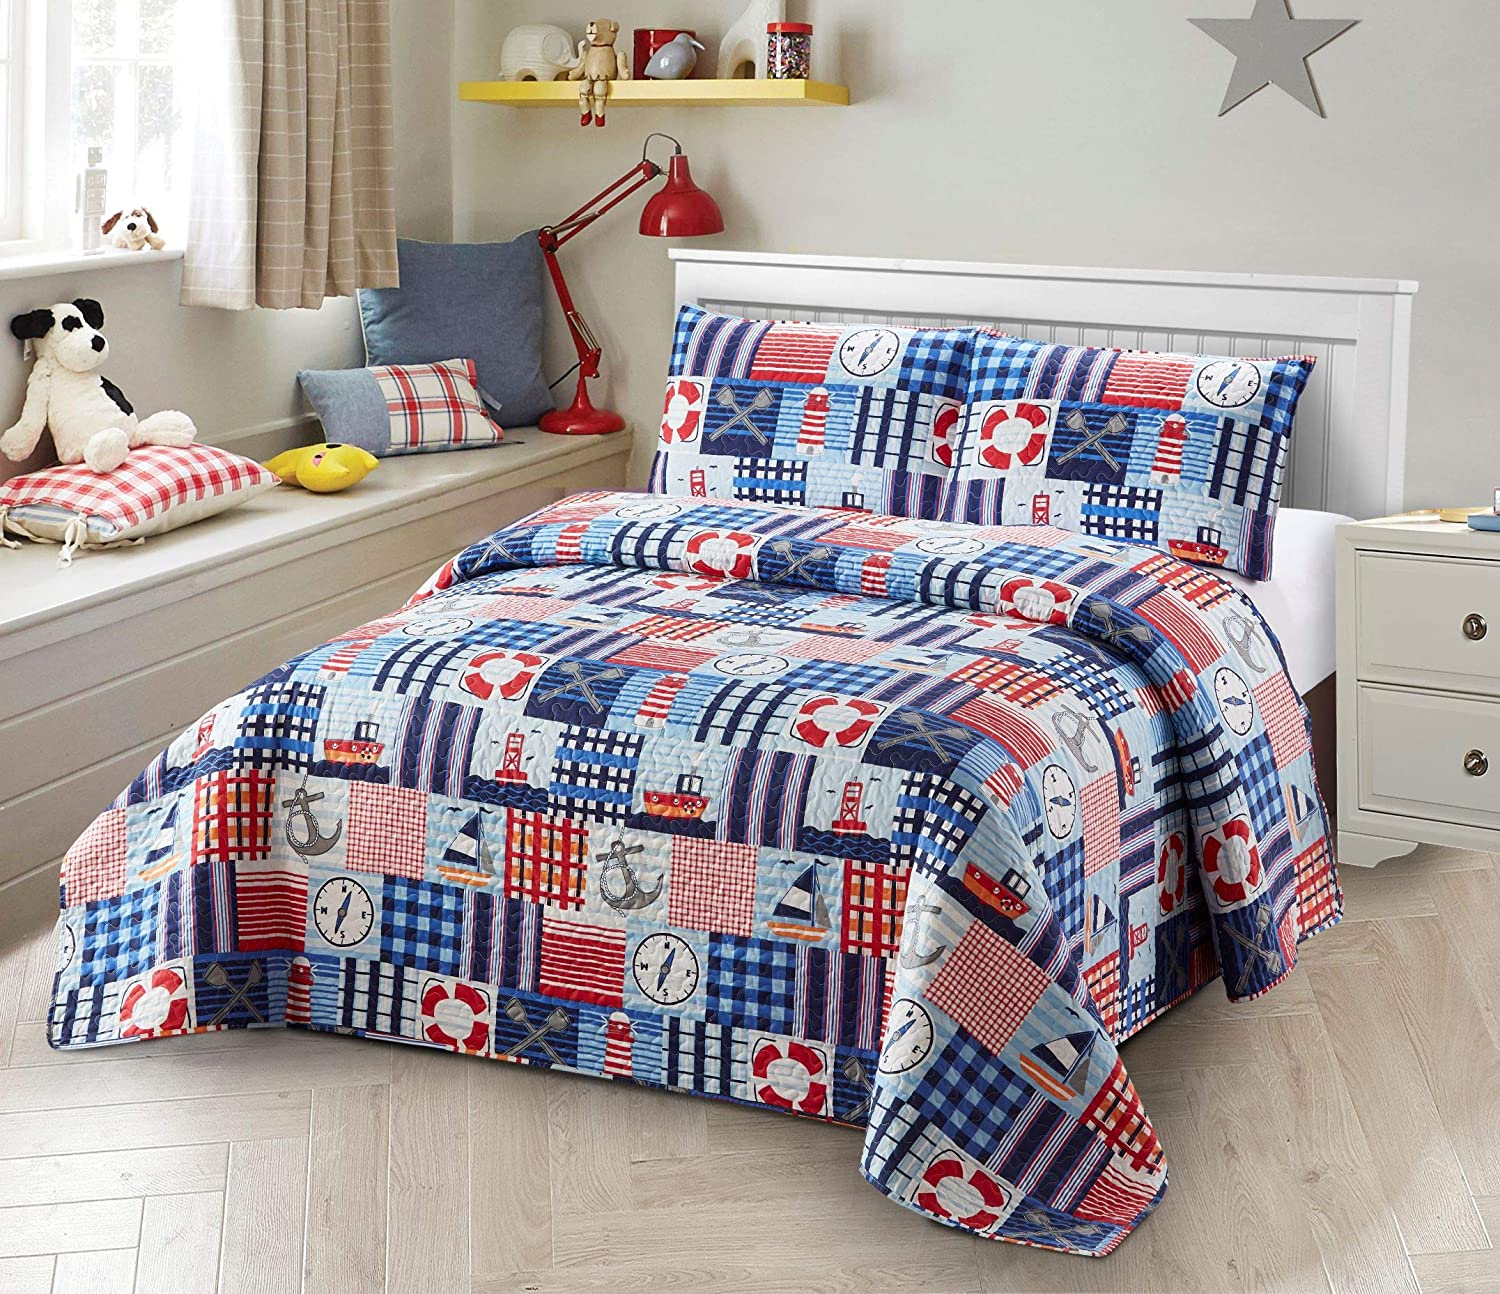 Better Home Style Patchwork Blue Red White Nautical Coastal Ships Lighthouse Anchor Sailor Nature Themed Style Kids/Boys/Toddler 2 Piece Coverlet Bedspread Quilt Set with Sham (Sailor, Twin)